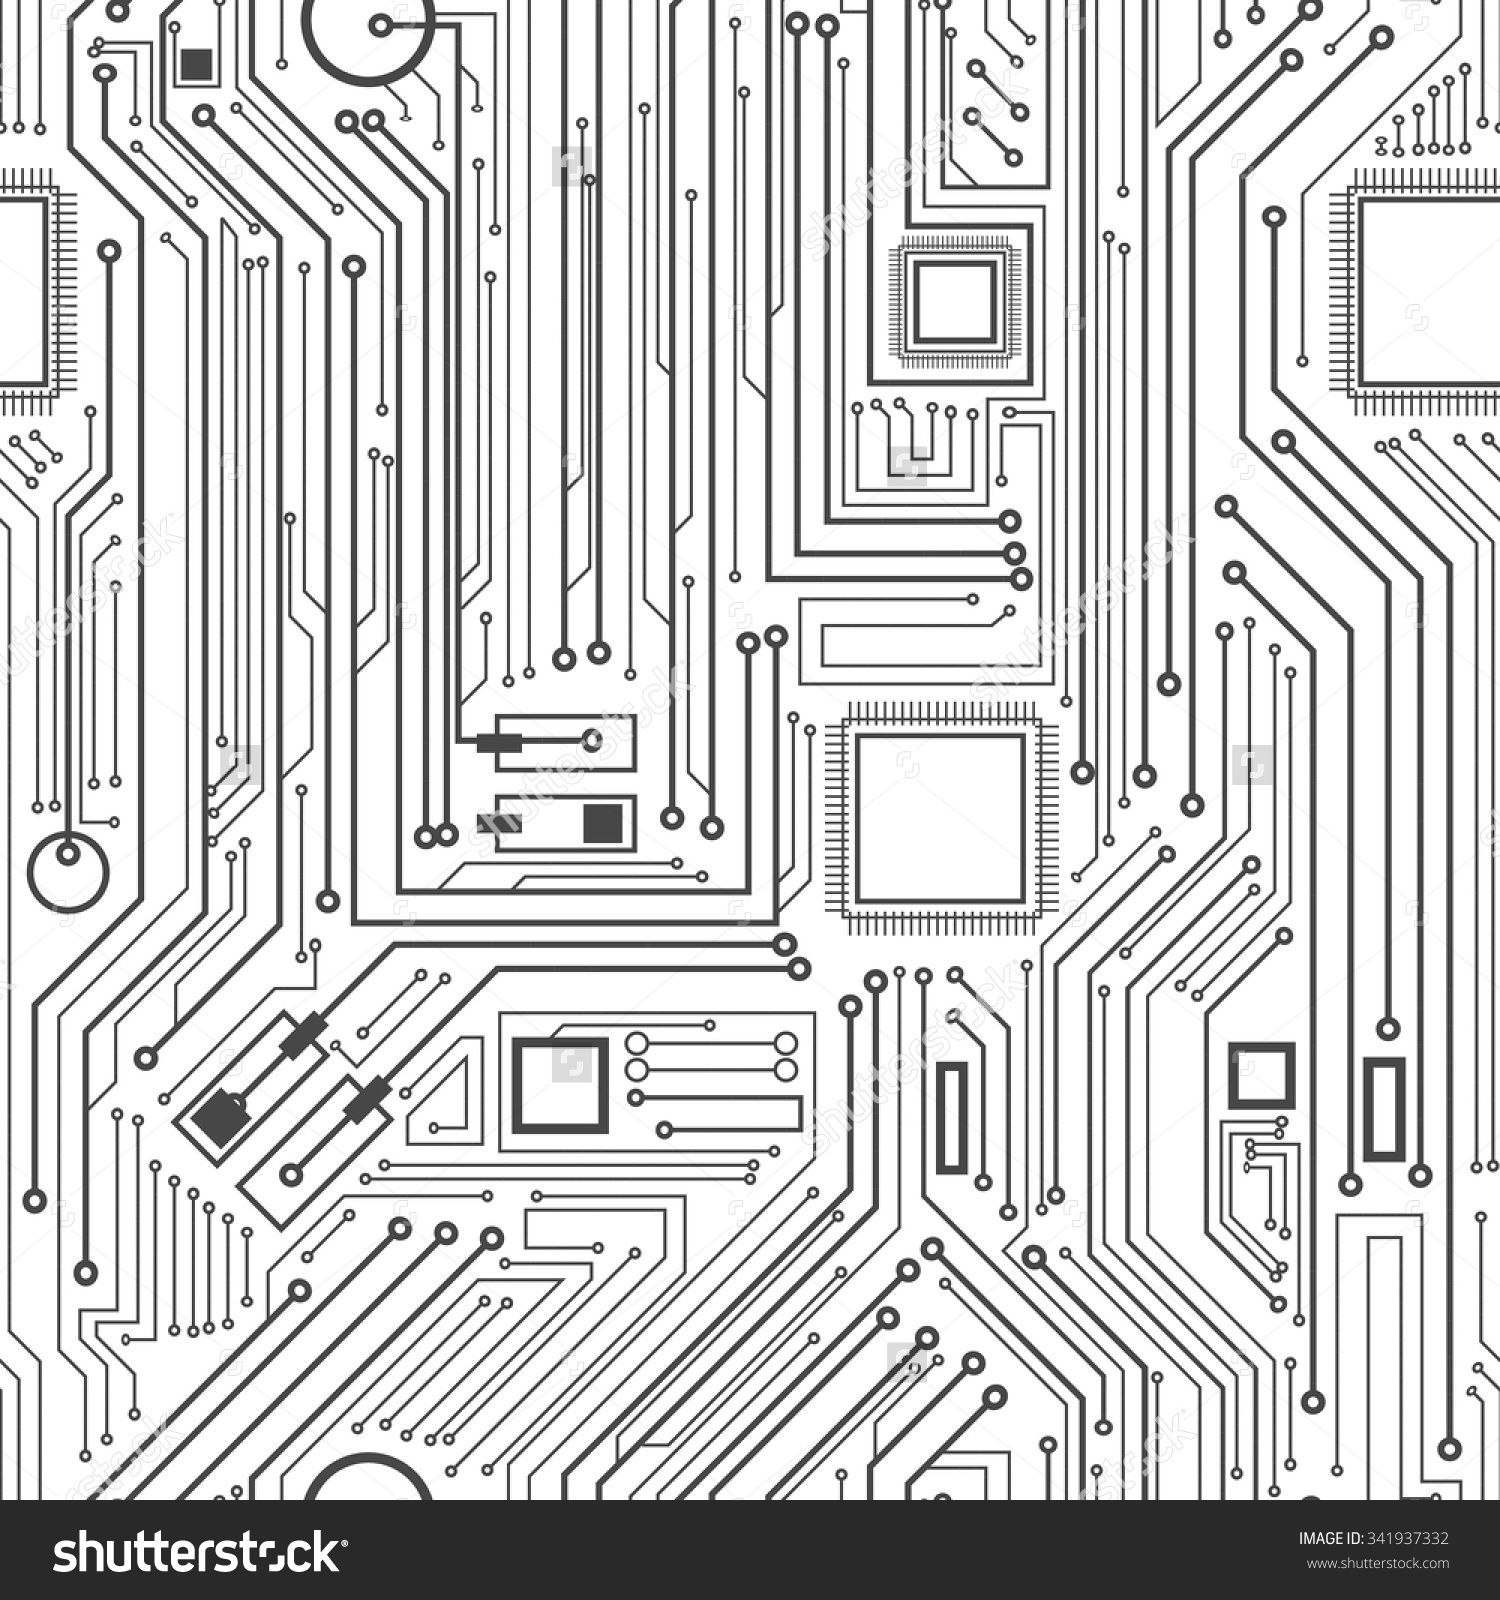 Image Result For Circuit Board Pattern Art Pinterest Vector Ultrasonic Transducer Circuitultrasonic News